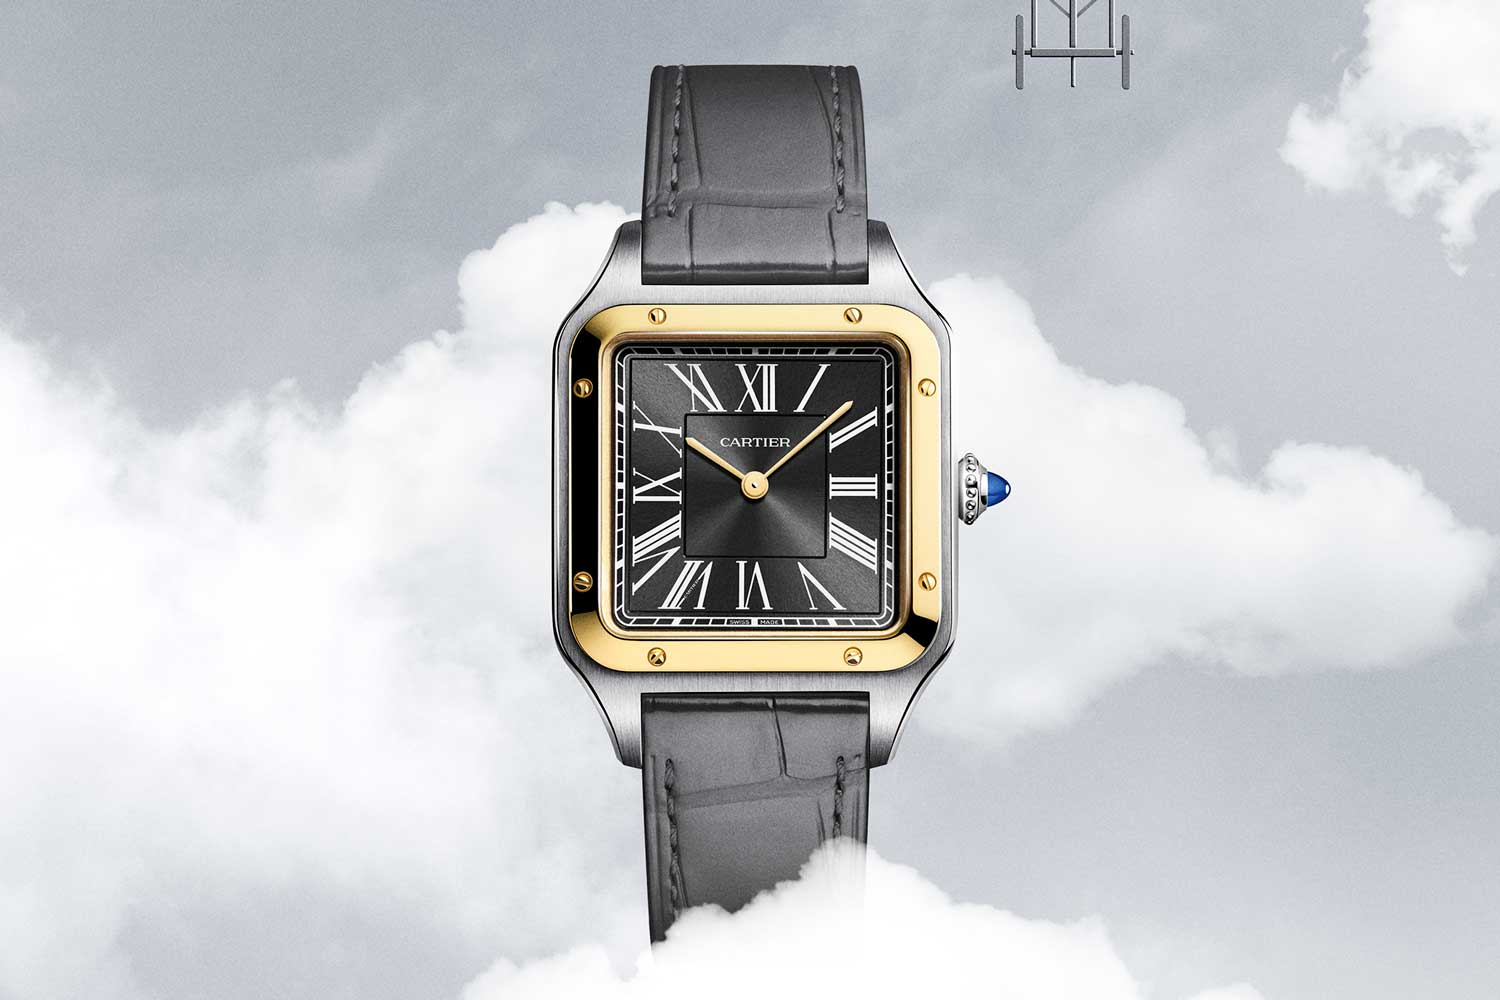 The winged aircraft is best known for winning several flight awards for Santos-Dumont, represented on the back of this special limited edition, with 500 pieces available globally.